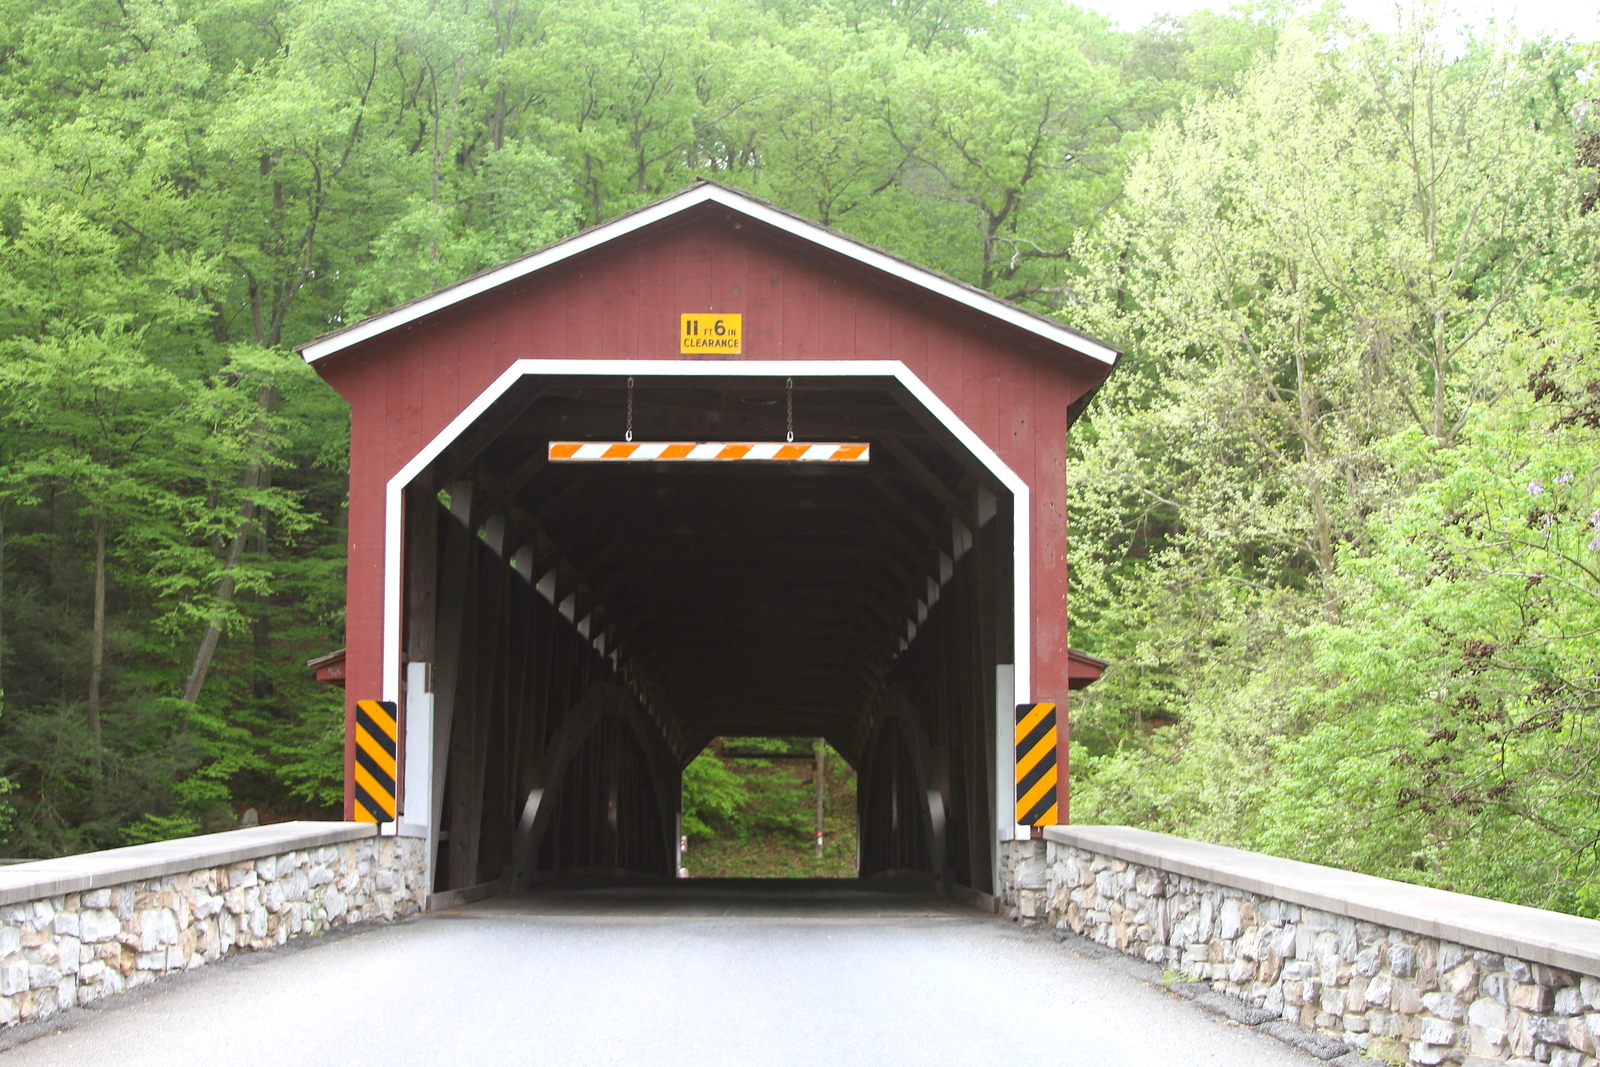 Colemanville Covered Bridge 13 x 19 Unmatted Photograph